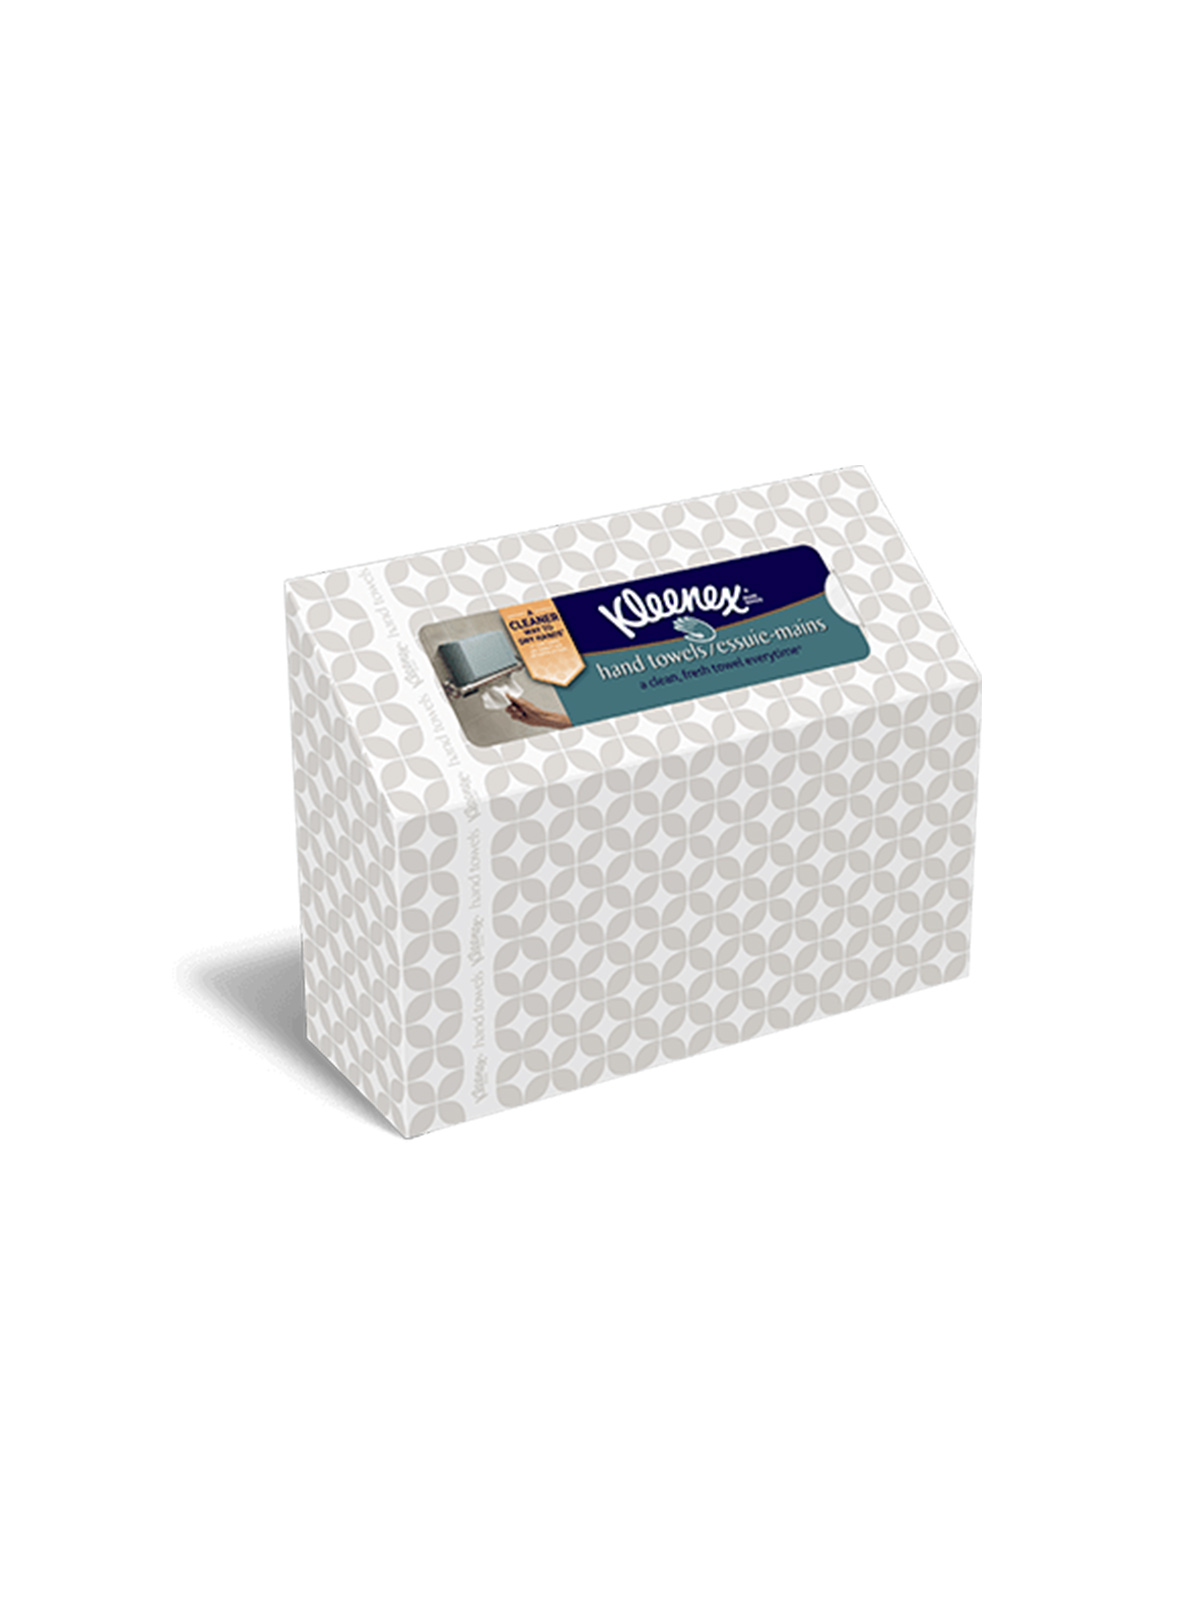 Amazon Best Selling Cleaning Product, Kleenex Hand Towels